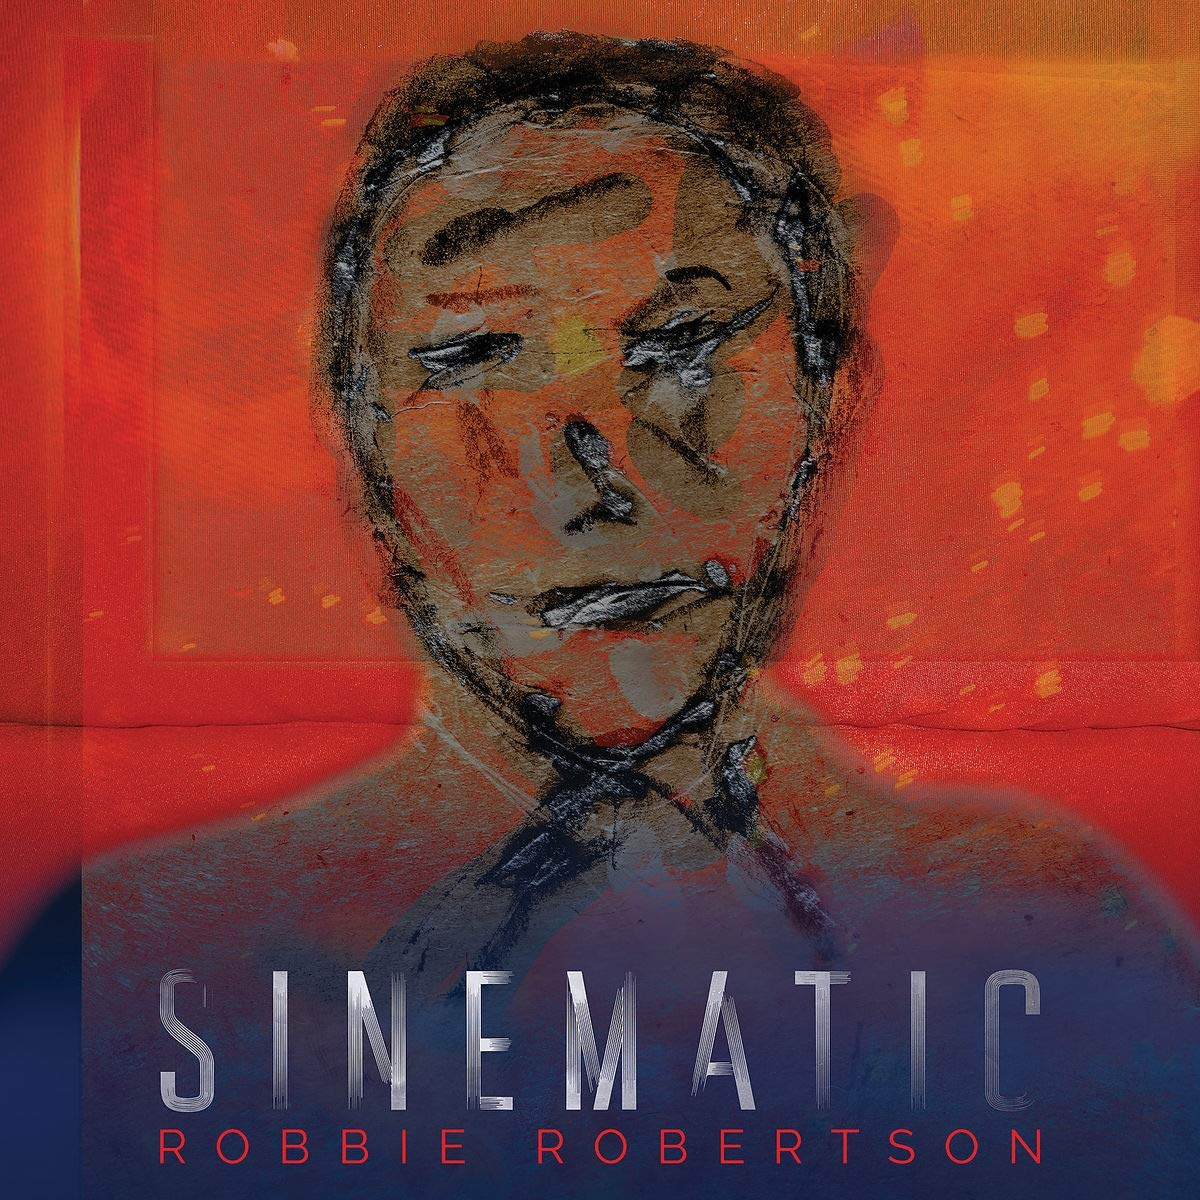 Buy Robbie Robertson: Sinematic New or Used via Amazon